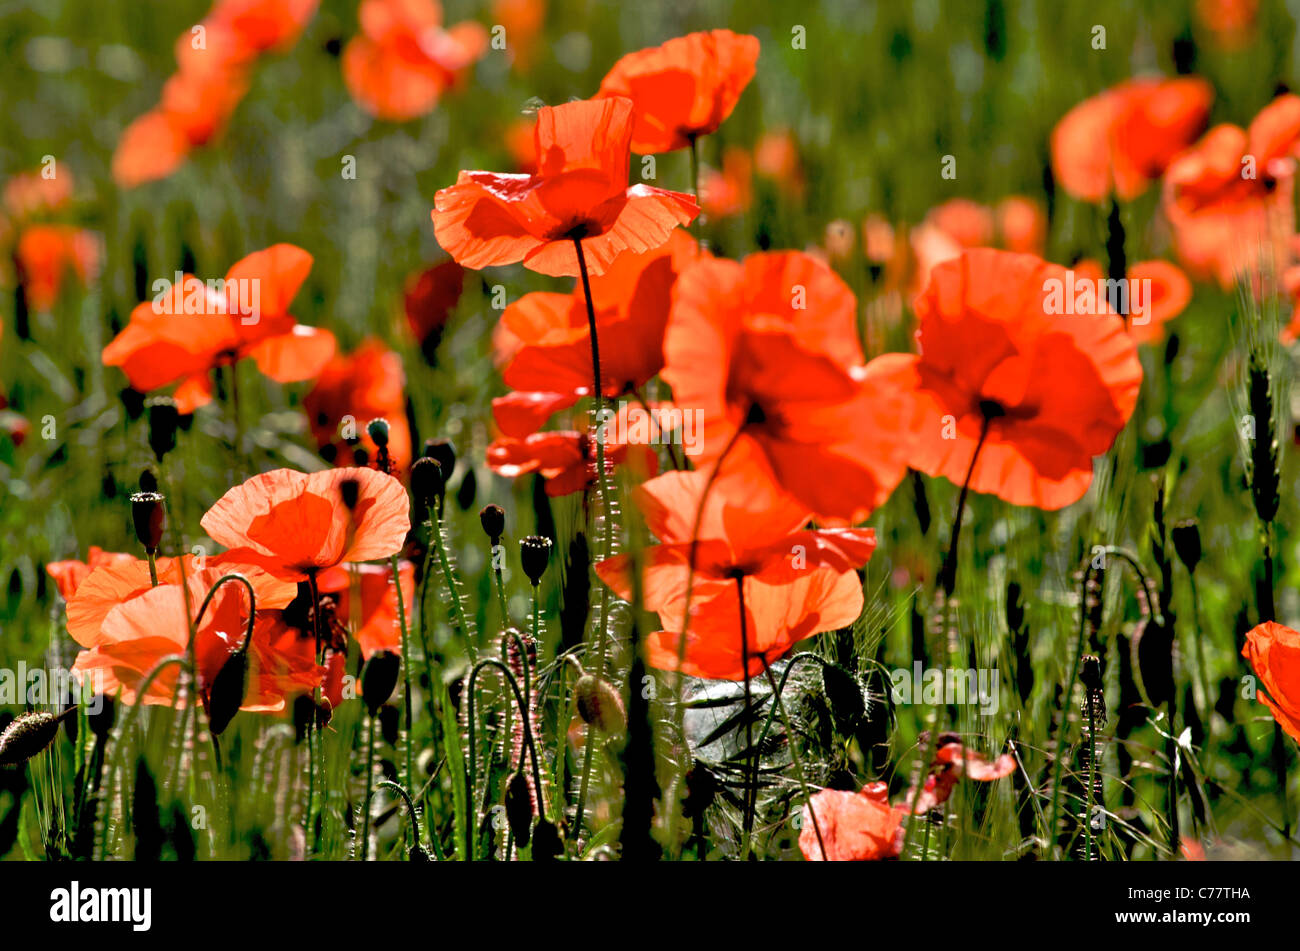 Poppy field - field of poppies in France - Stock Image